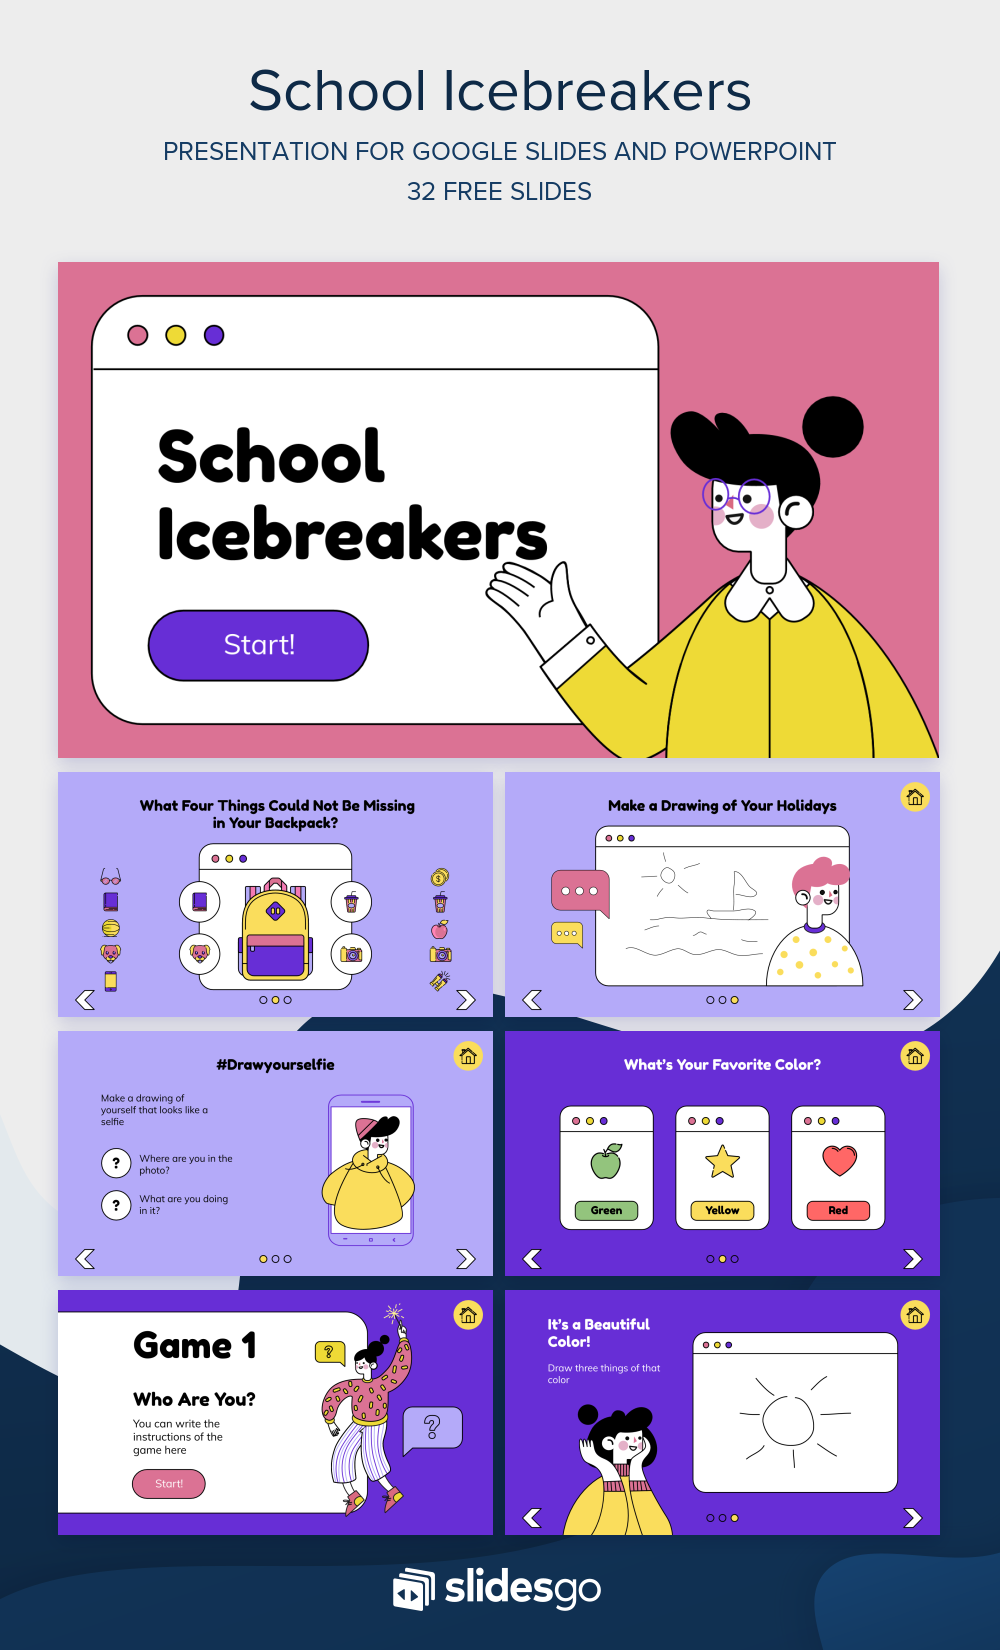 Go Back To School And Begin Your Classes With This Funny Icebreaker Google Slides Theme And Powerpoint Templat Desain Powerpoint Desain Presentasi Power Points